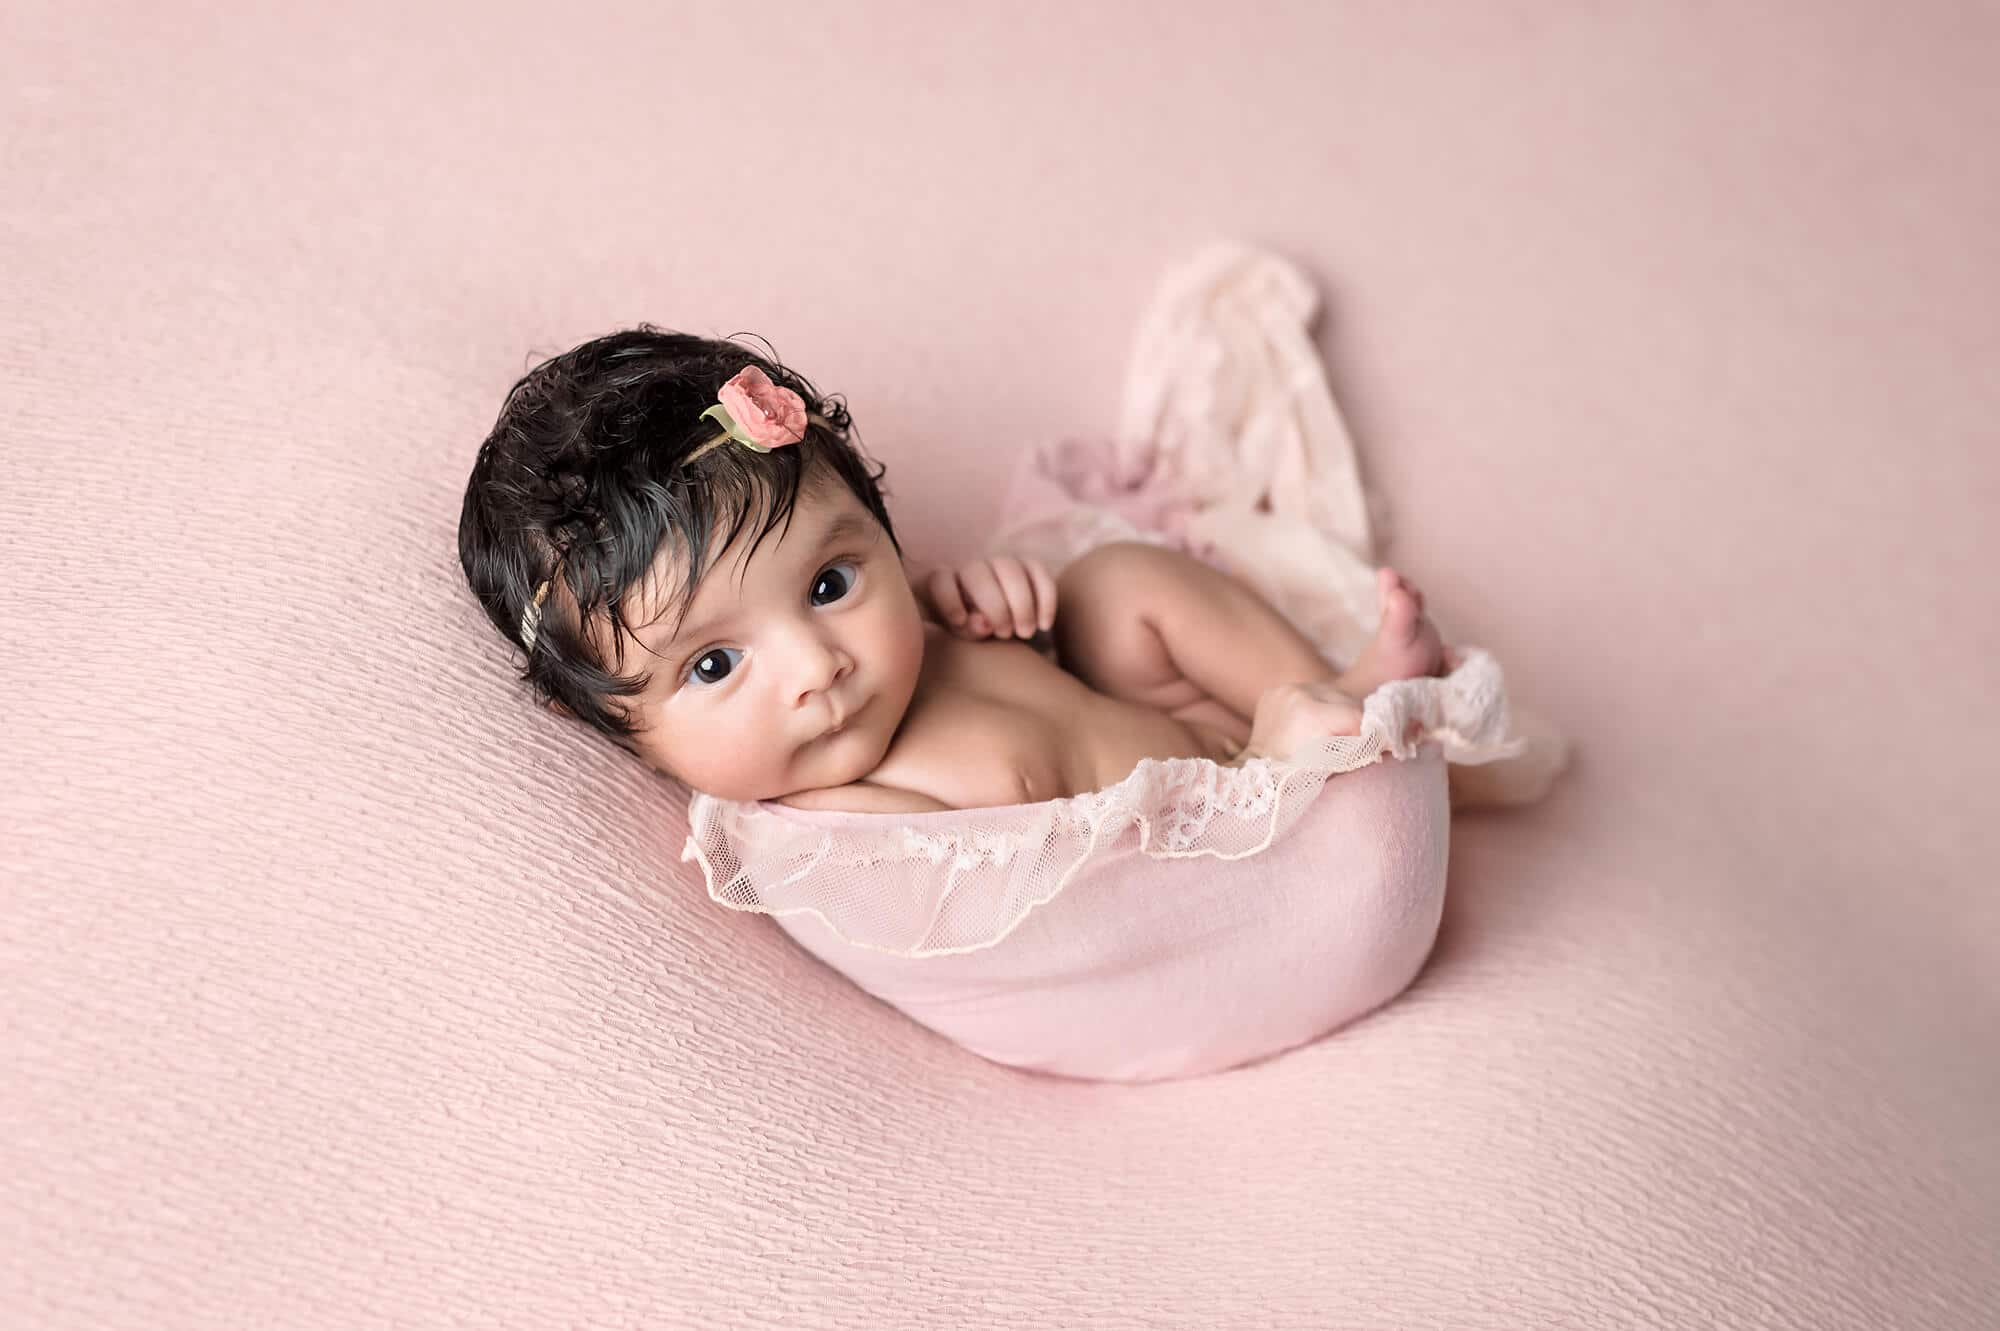 Newborn Eye Open Pink Backdrop Eden Bao